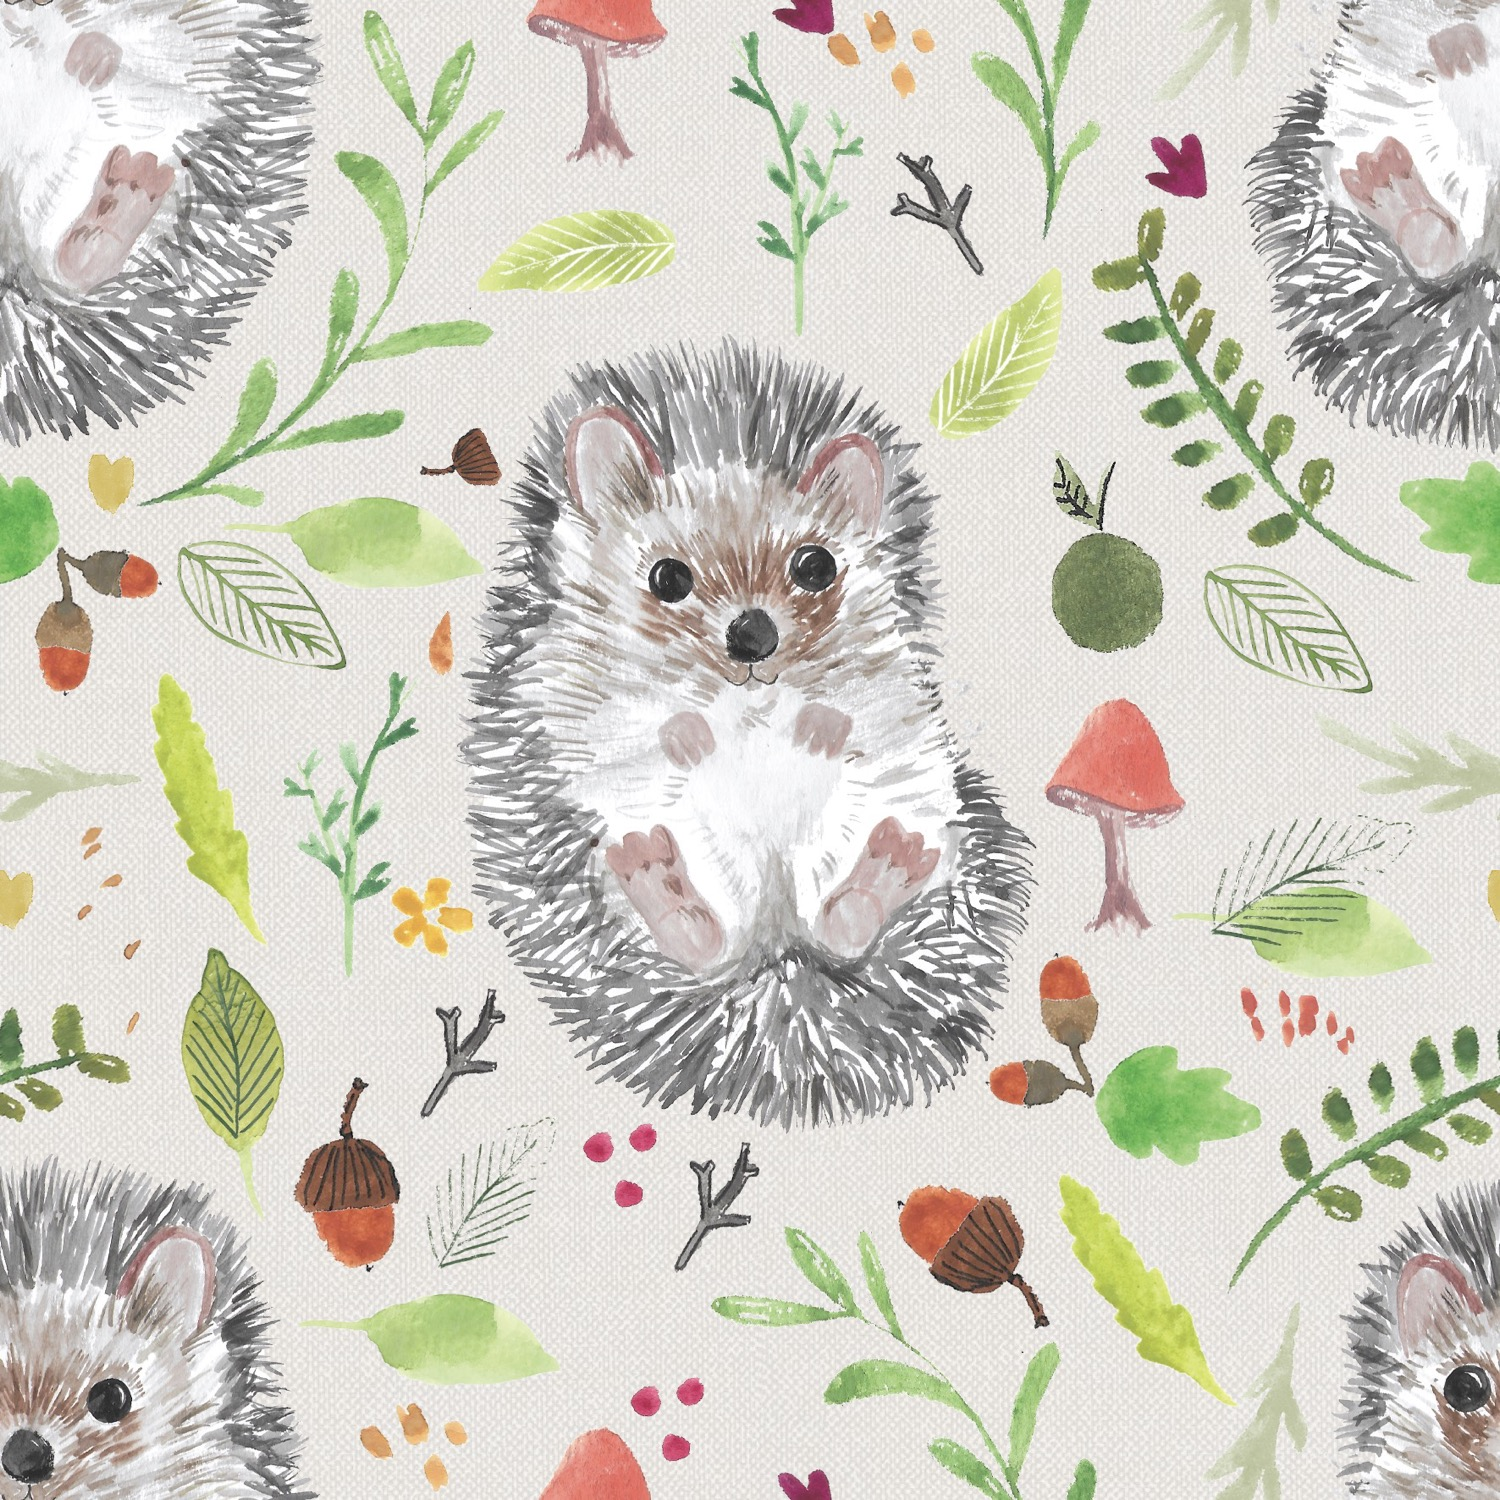 Woodland Hedgehog - Older Children 6-10 years